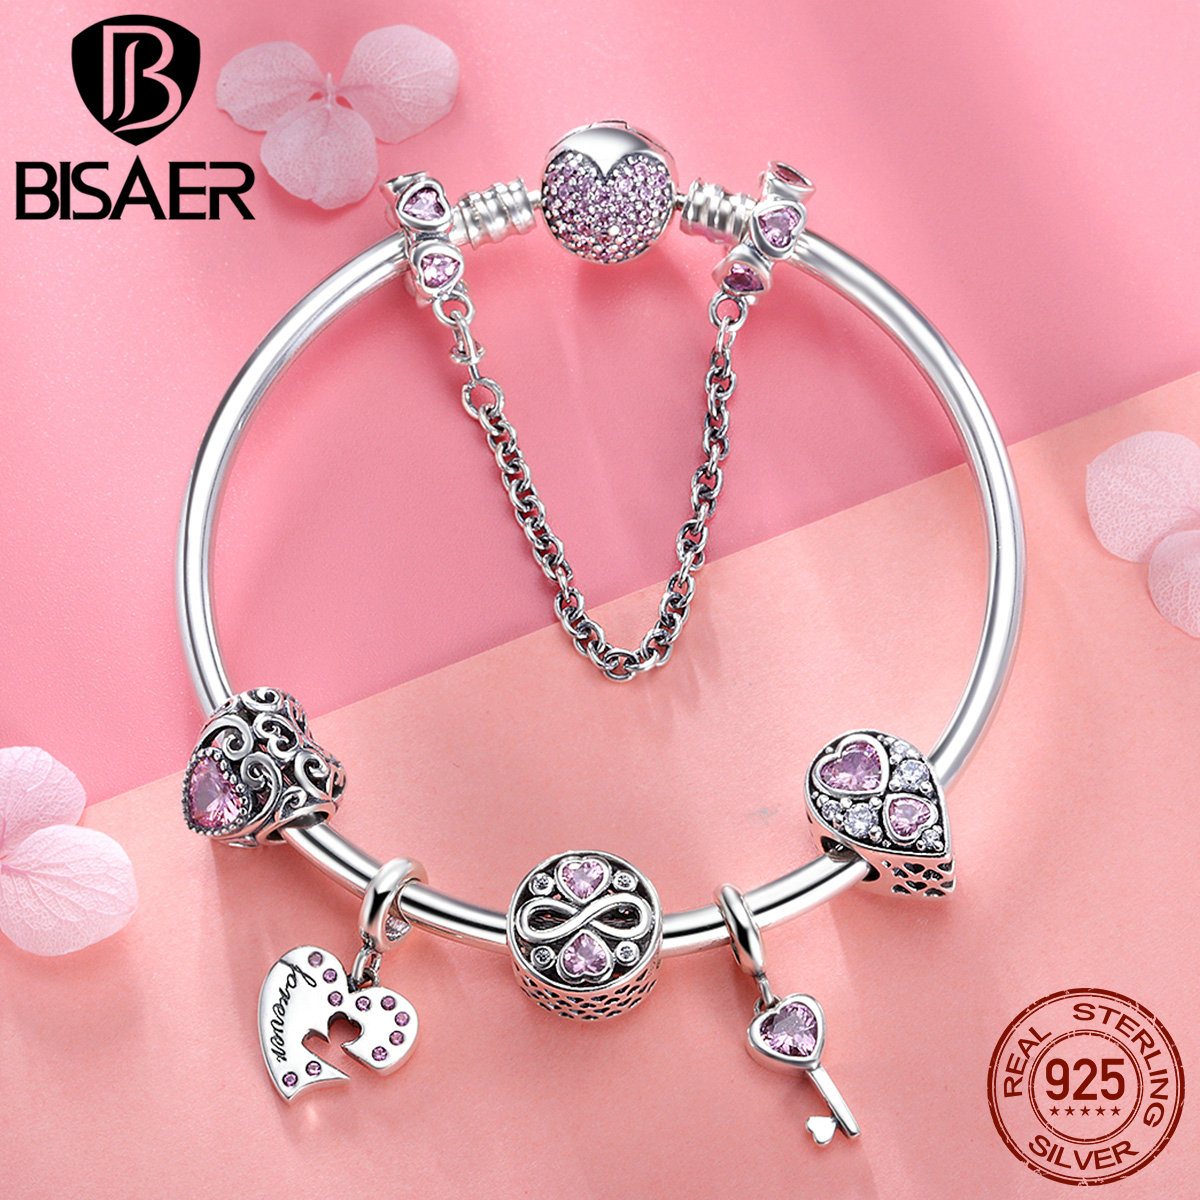 BISAER 7Pcs 925 Sterling Silver Heart Key And Locket Heart Pendant Brand Charm Bracelet For Women Wedding Silver Bangle GXB811 pd2 ztung custom made pd2 bracelet sterling silver for women and men have heart for love